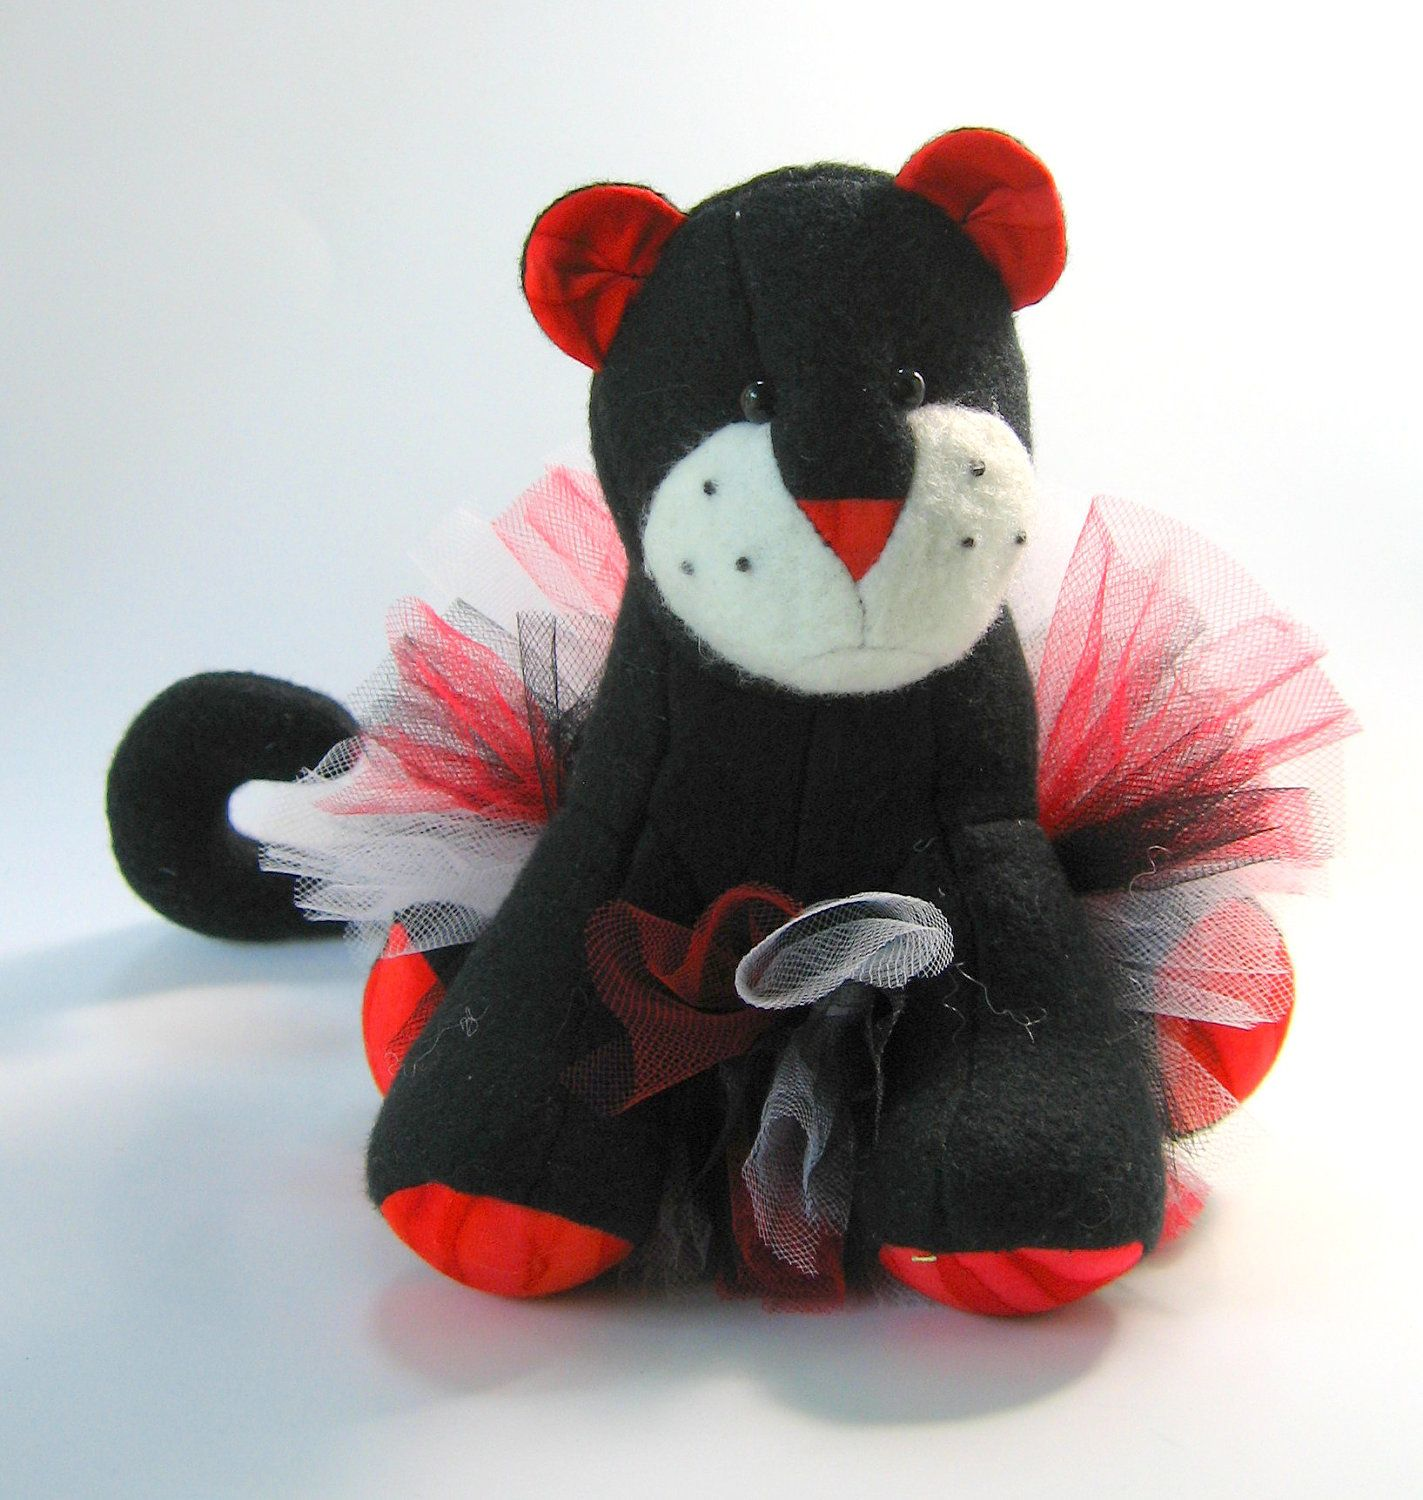 Rosie the Dancing Panther, plush, small stuffed animal, soft, red ...